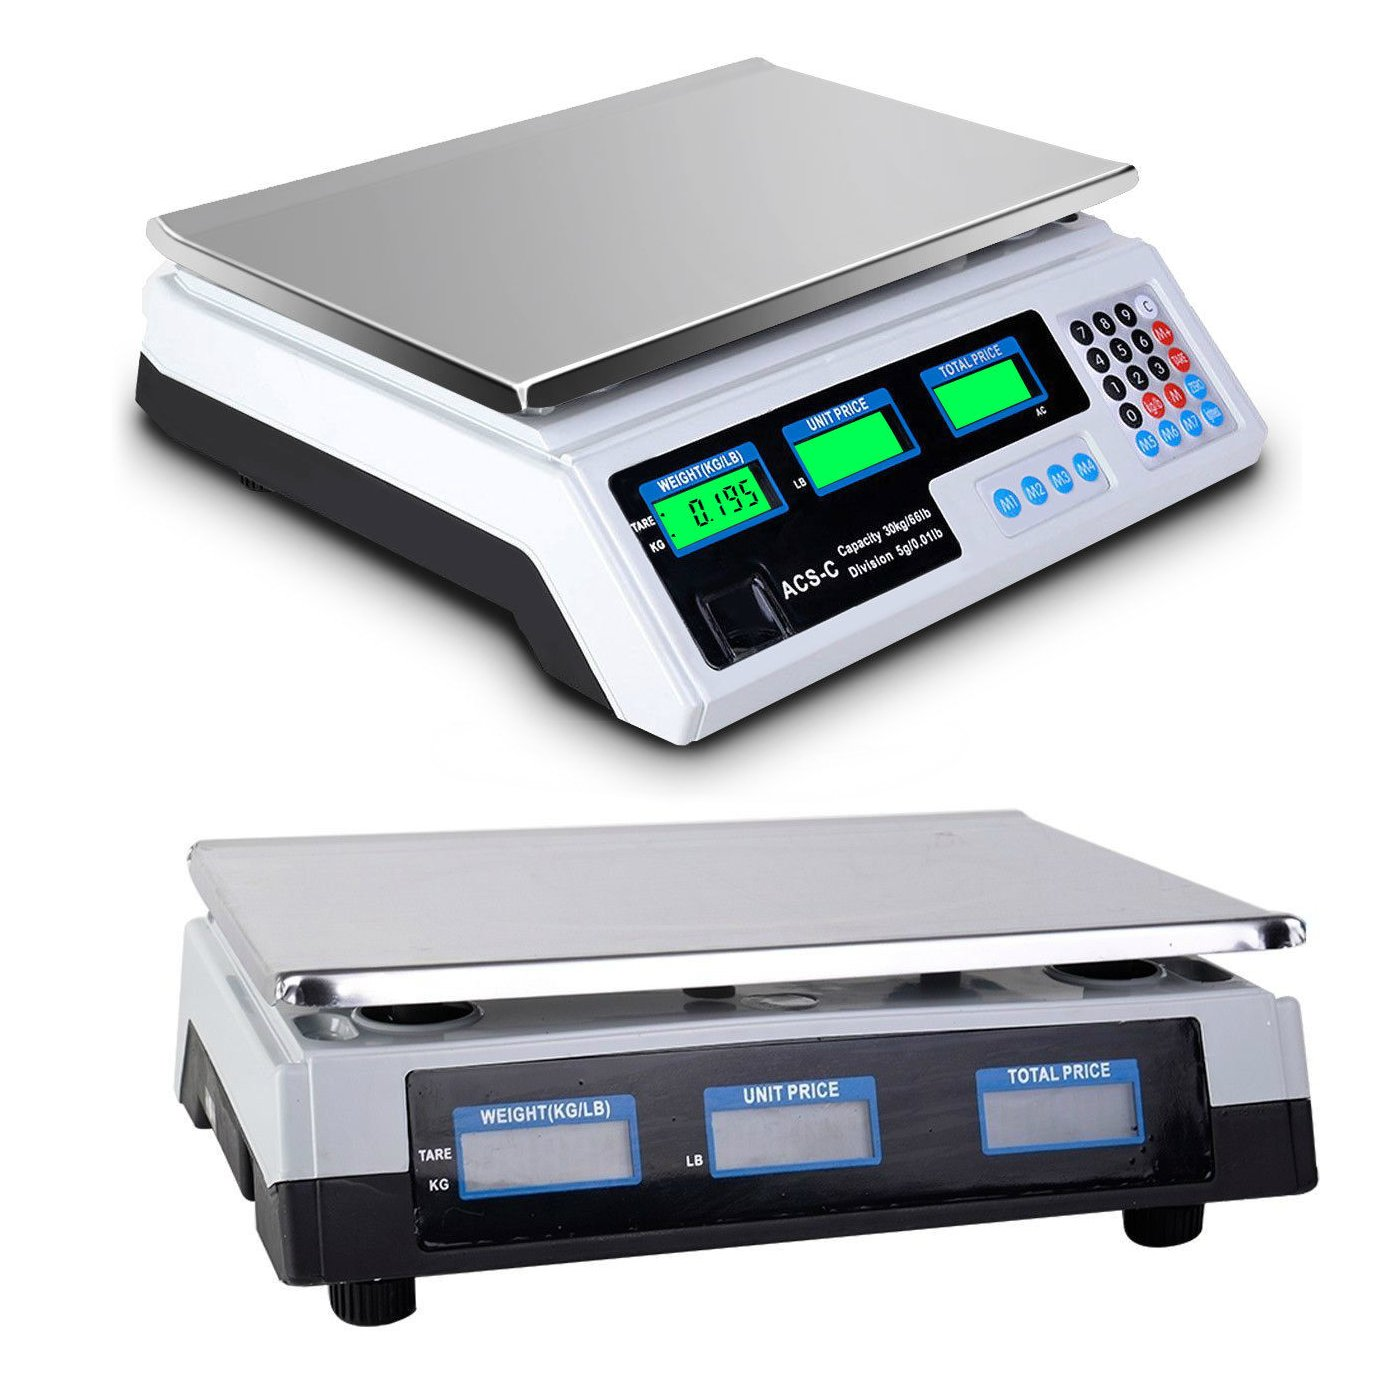 30Kg/66lb x 5g/0.01lb Commercial Food Deli Scale | Lb Kg Food Meat Price Computing Digital Display Weight Scale Electronic Counter Supermarket Retail Outlet Store